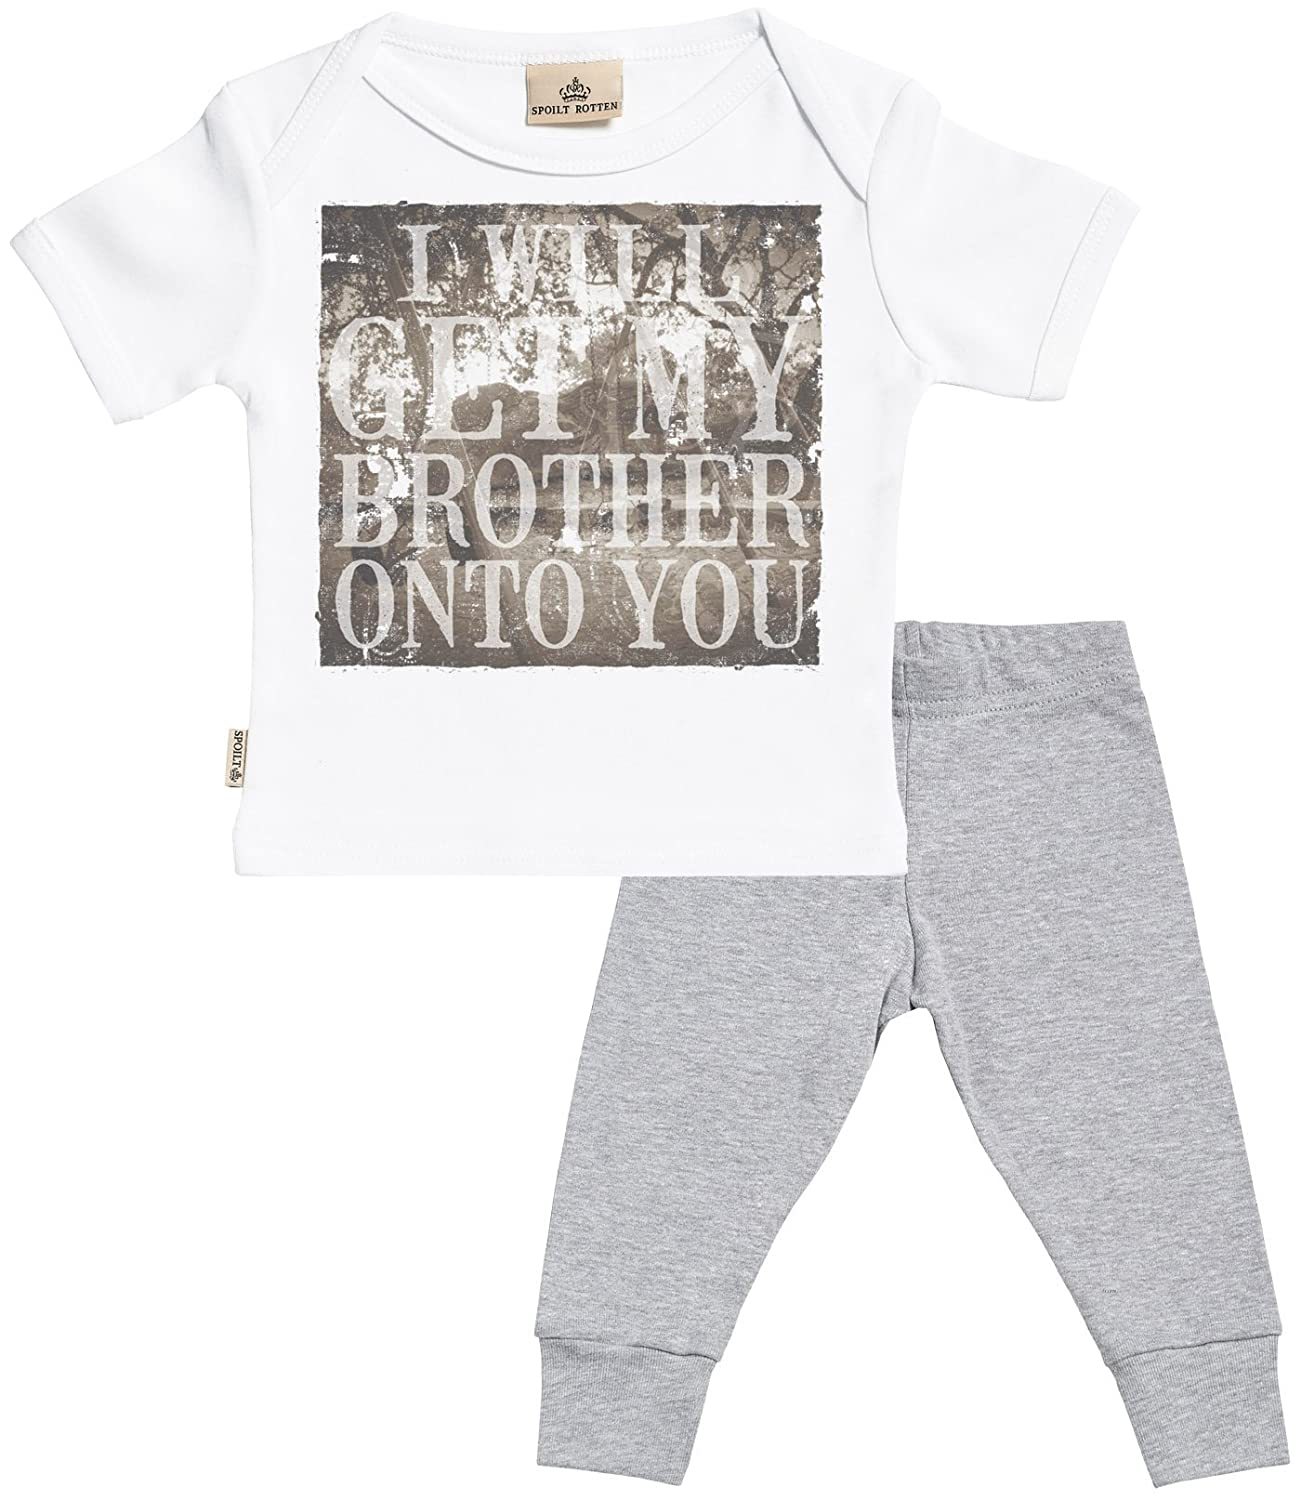 SR Baby T Shirt /& Baby Bottoms Outfit Baby T-Shirt /& Baby Jersey Trousers I Will Get My Brother onto You Baby Set